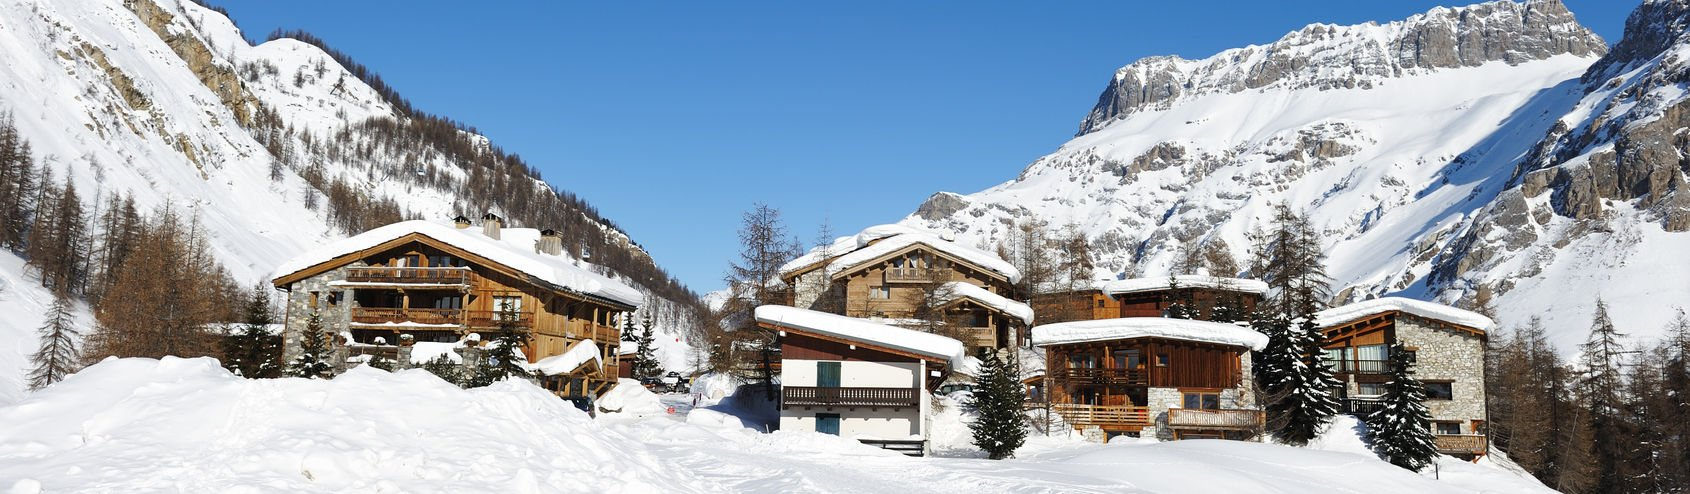 location chalet ski massif central